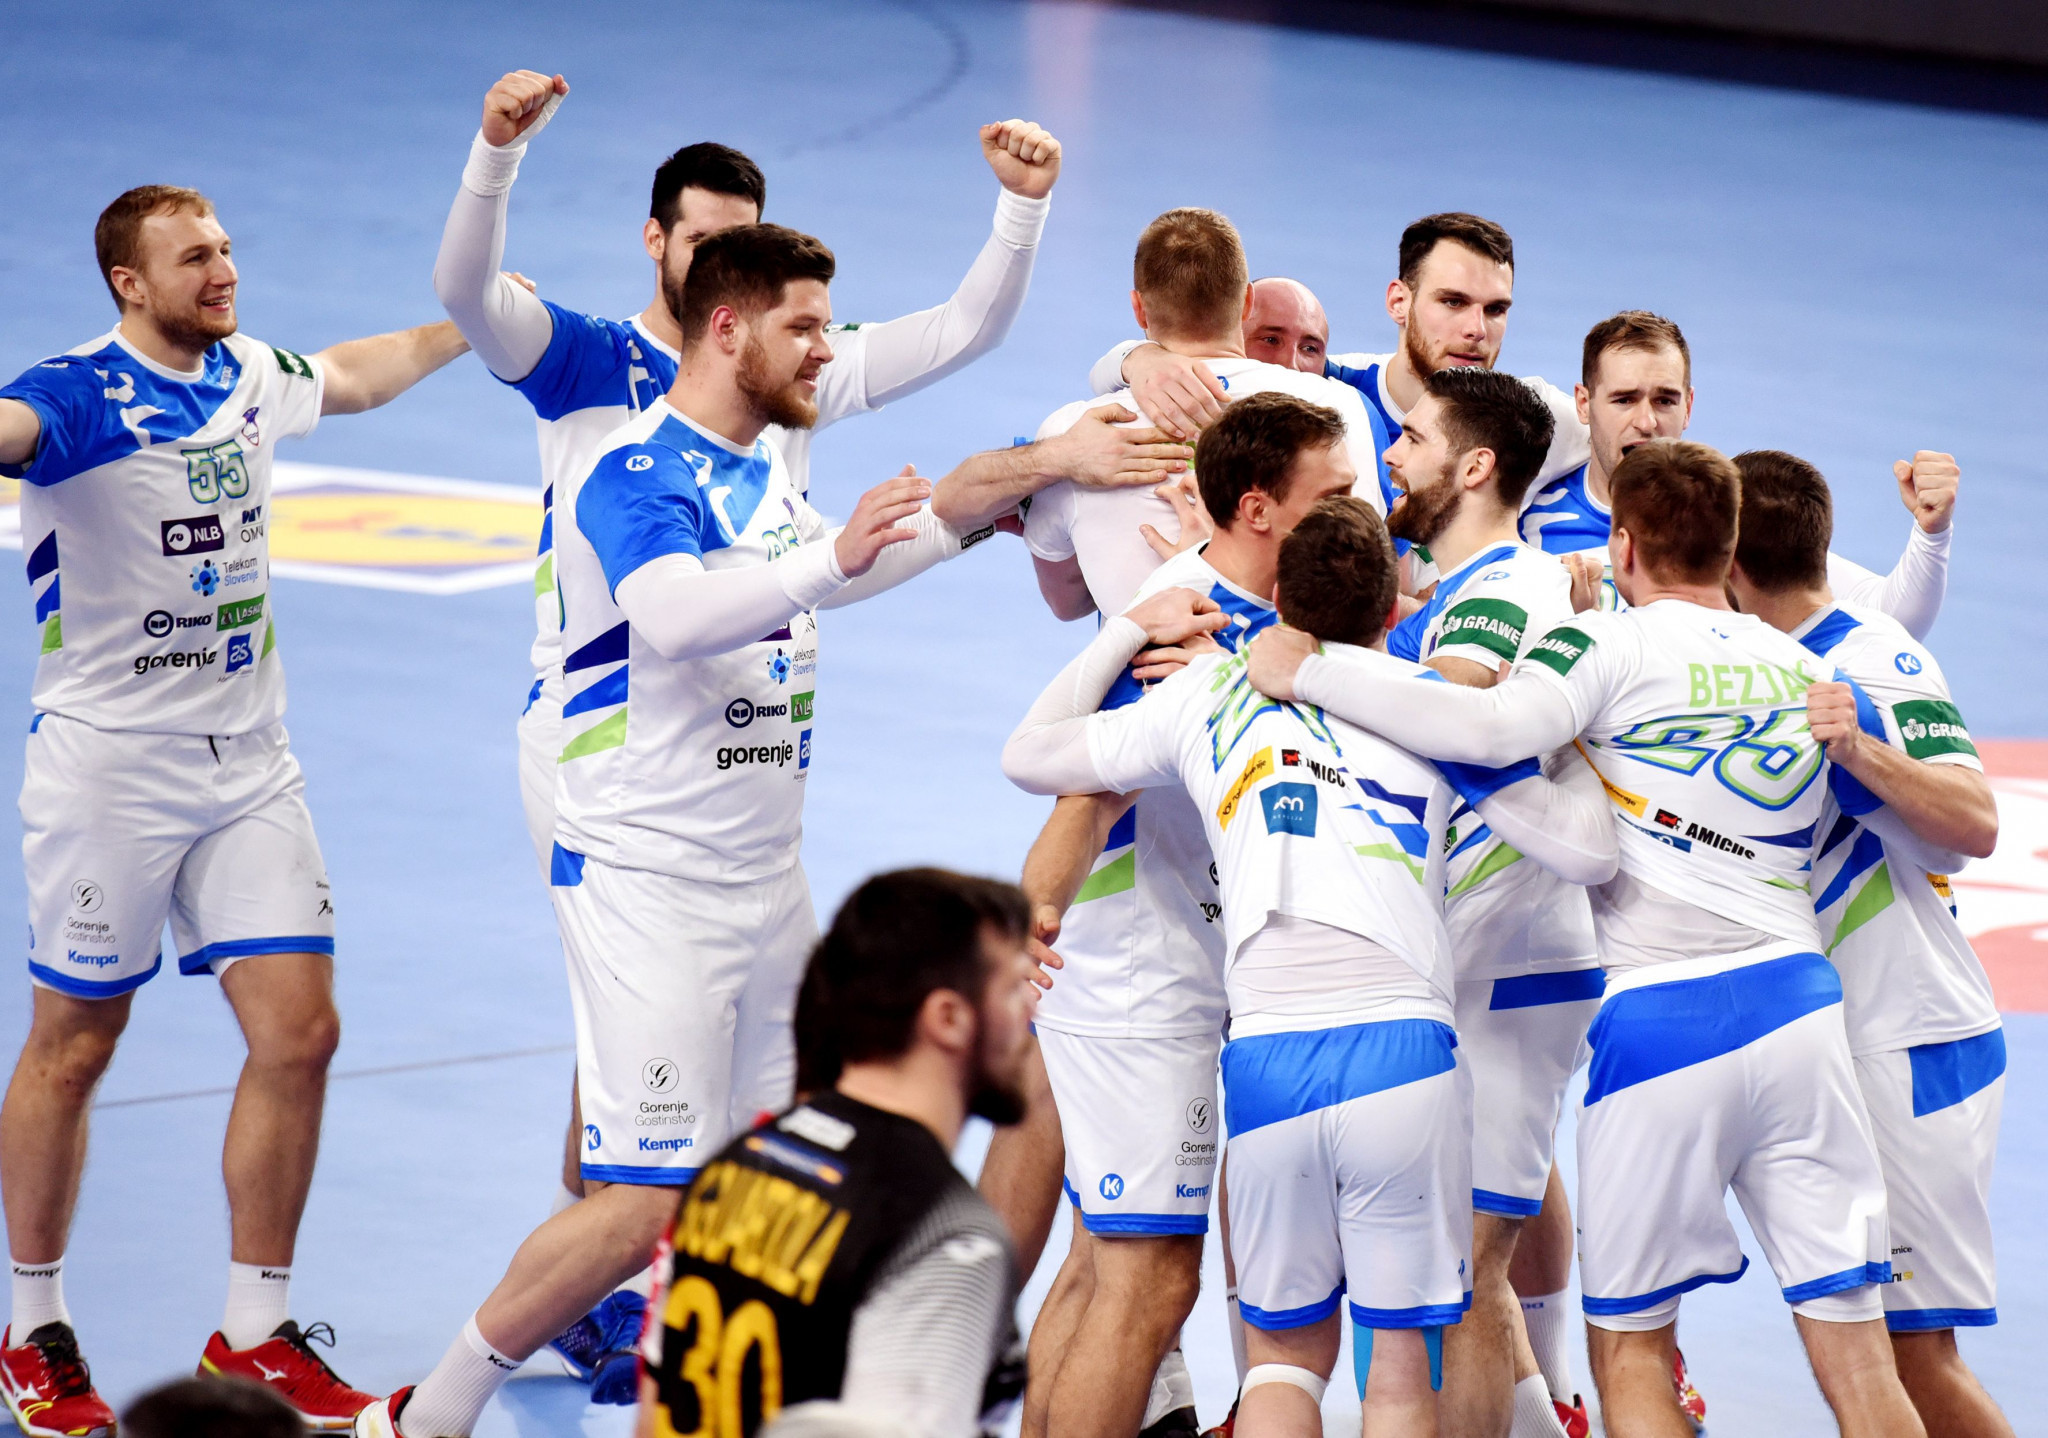 Spain suffer shock loss to Slovenia at European Men's Handball Championship